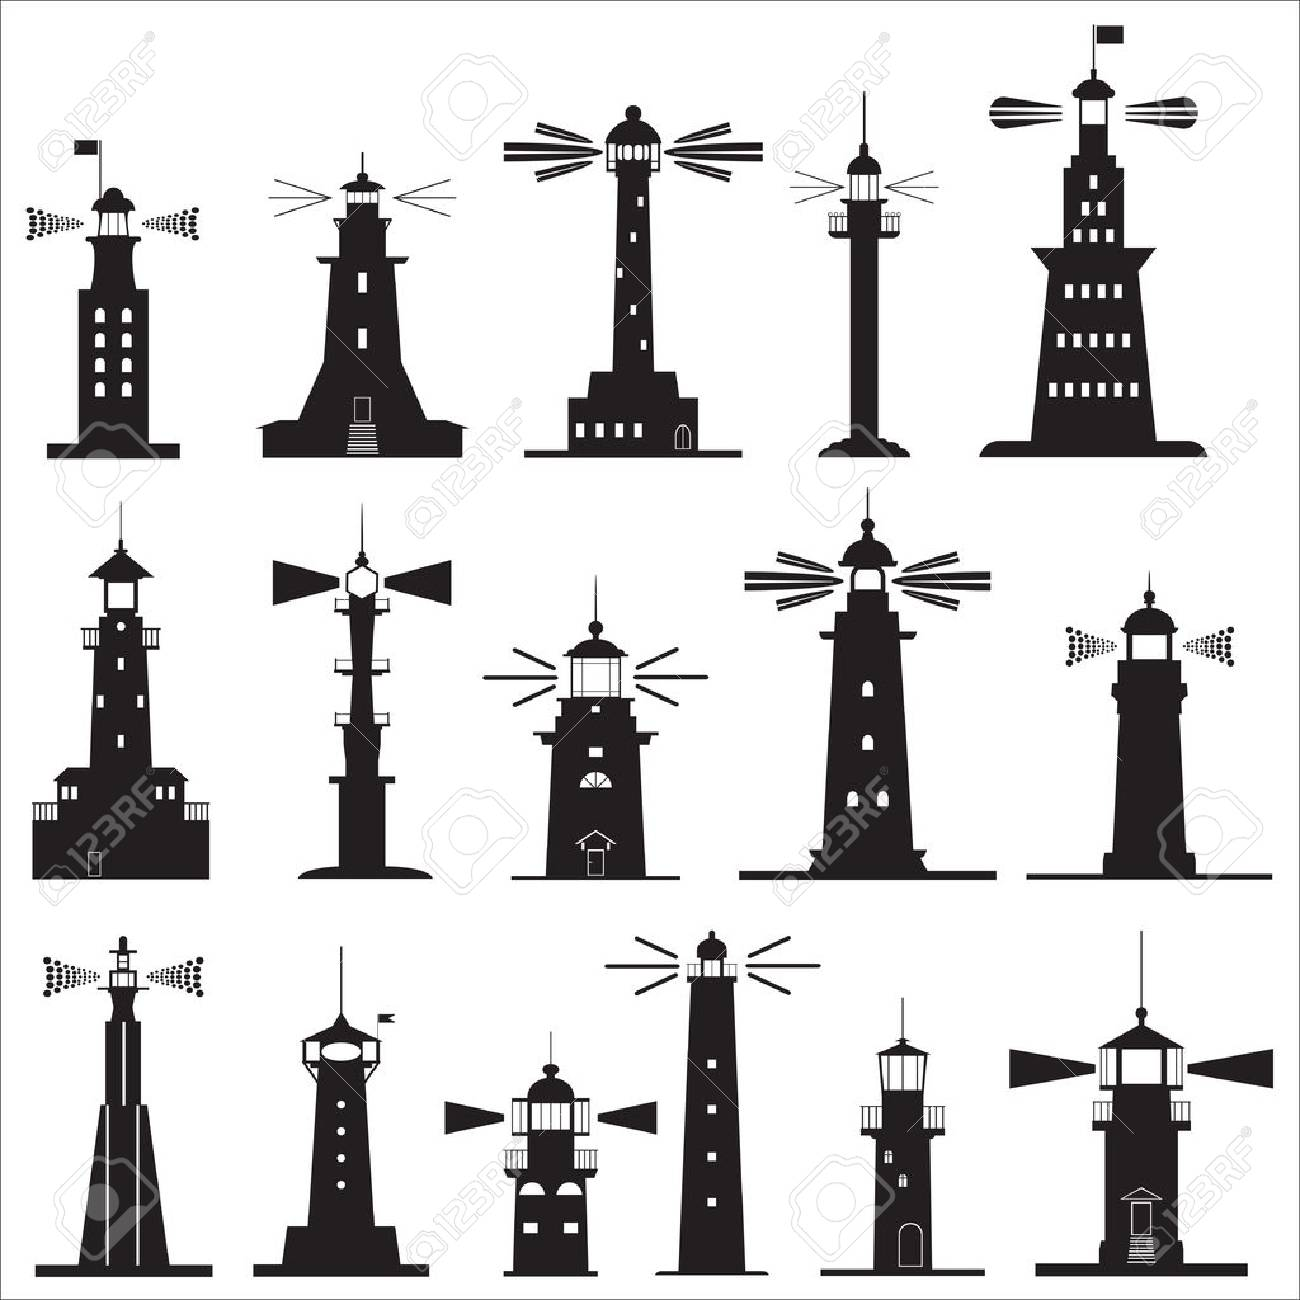 Set Icons of Lighthouses. Vector illustration - 57839223